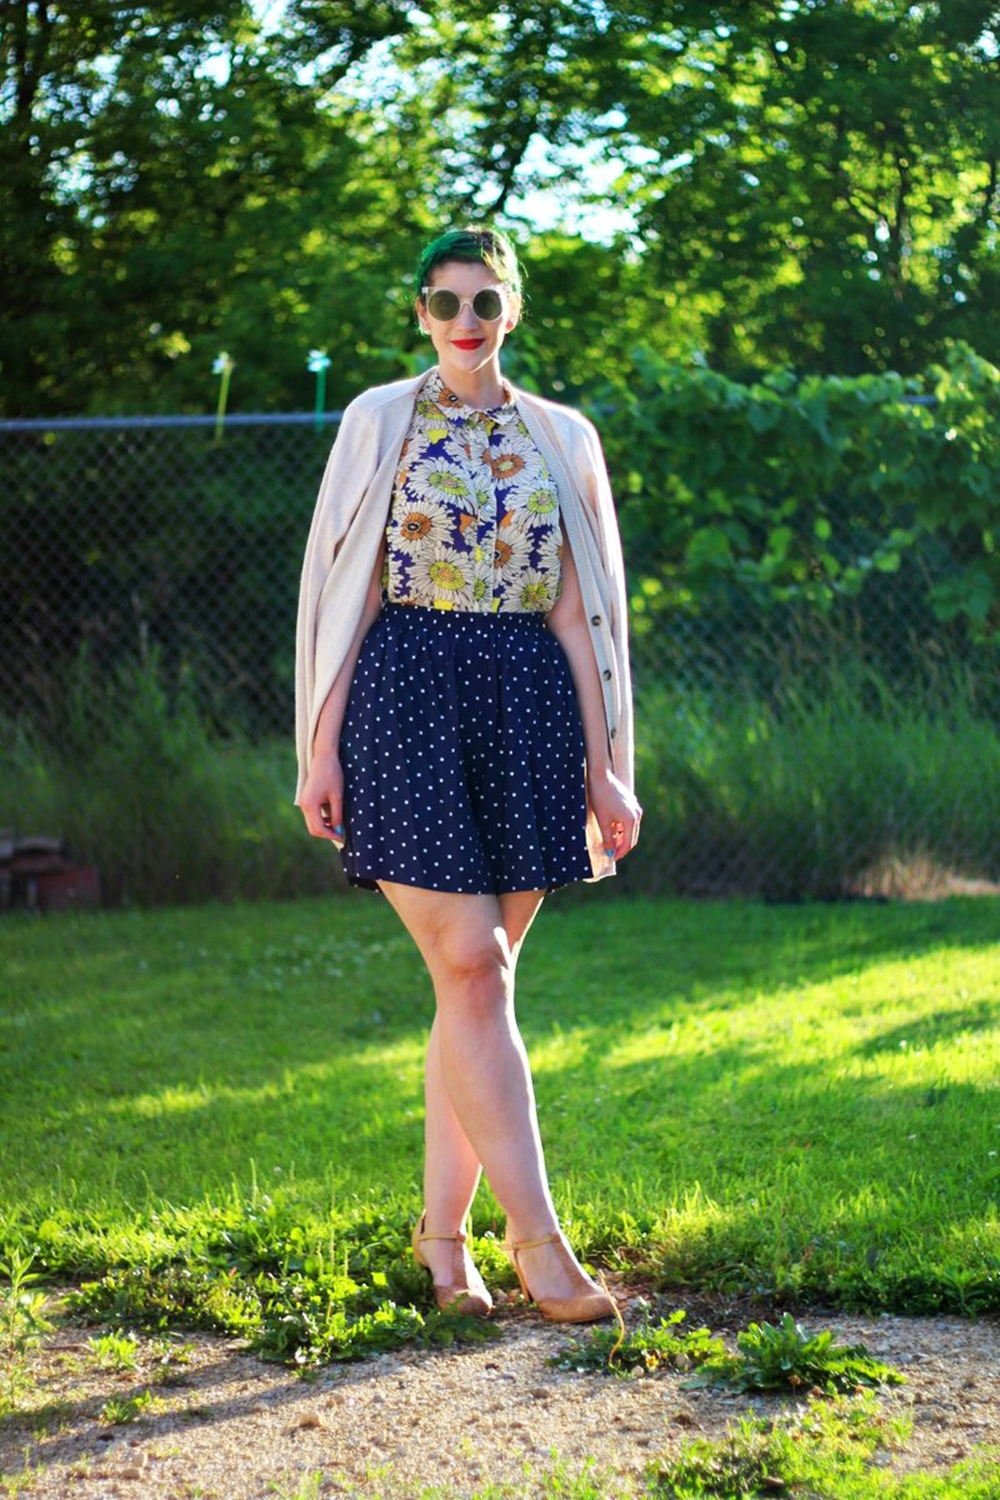 sunglasses-green-hair-vintage-floral-thrifted-summer-outfit-05